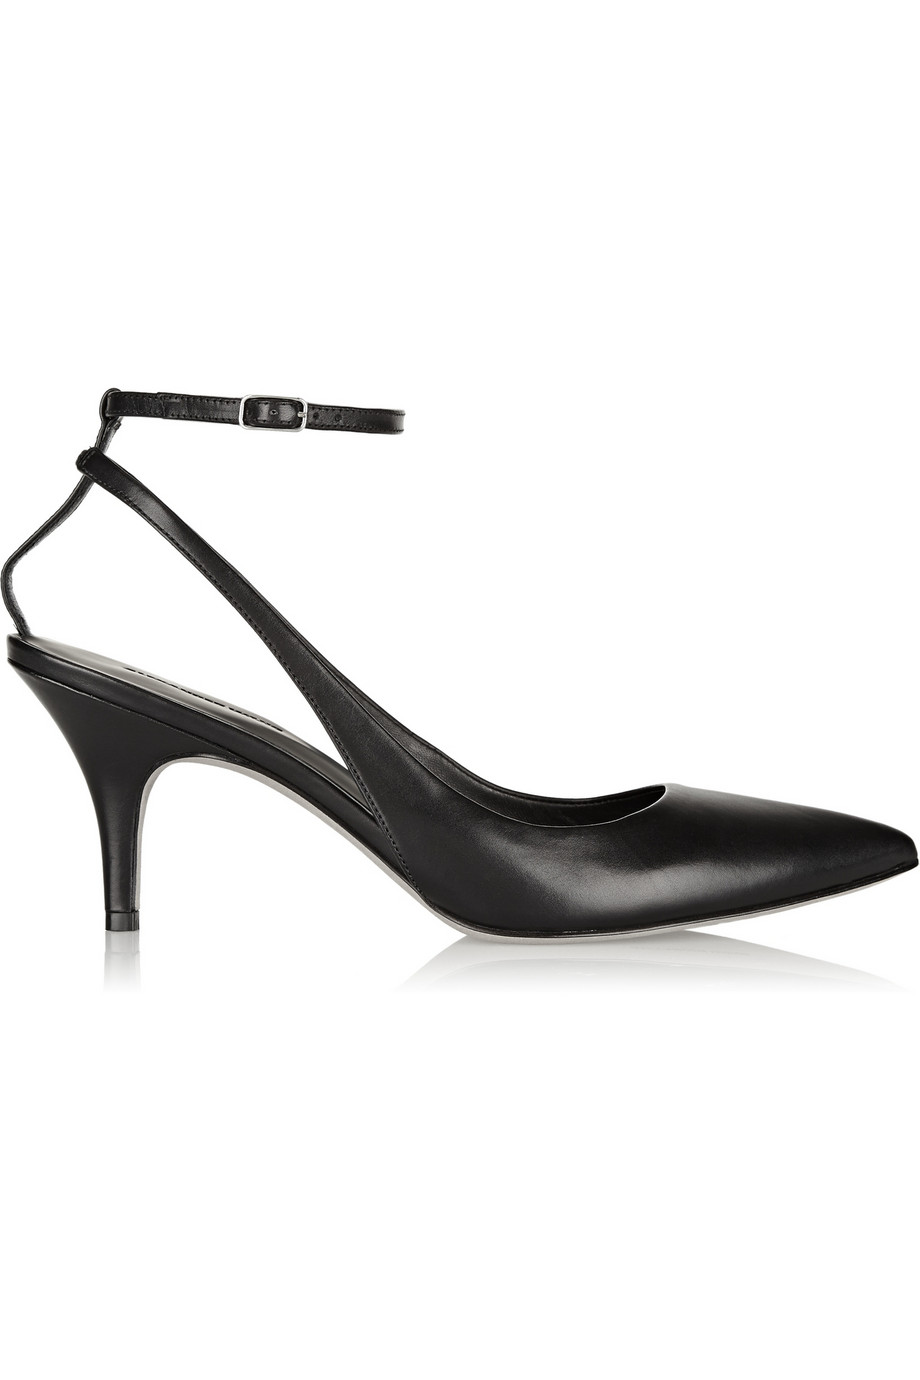 Alexander Wang Lera leather pumps – 50% at THE OUTNET.COM